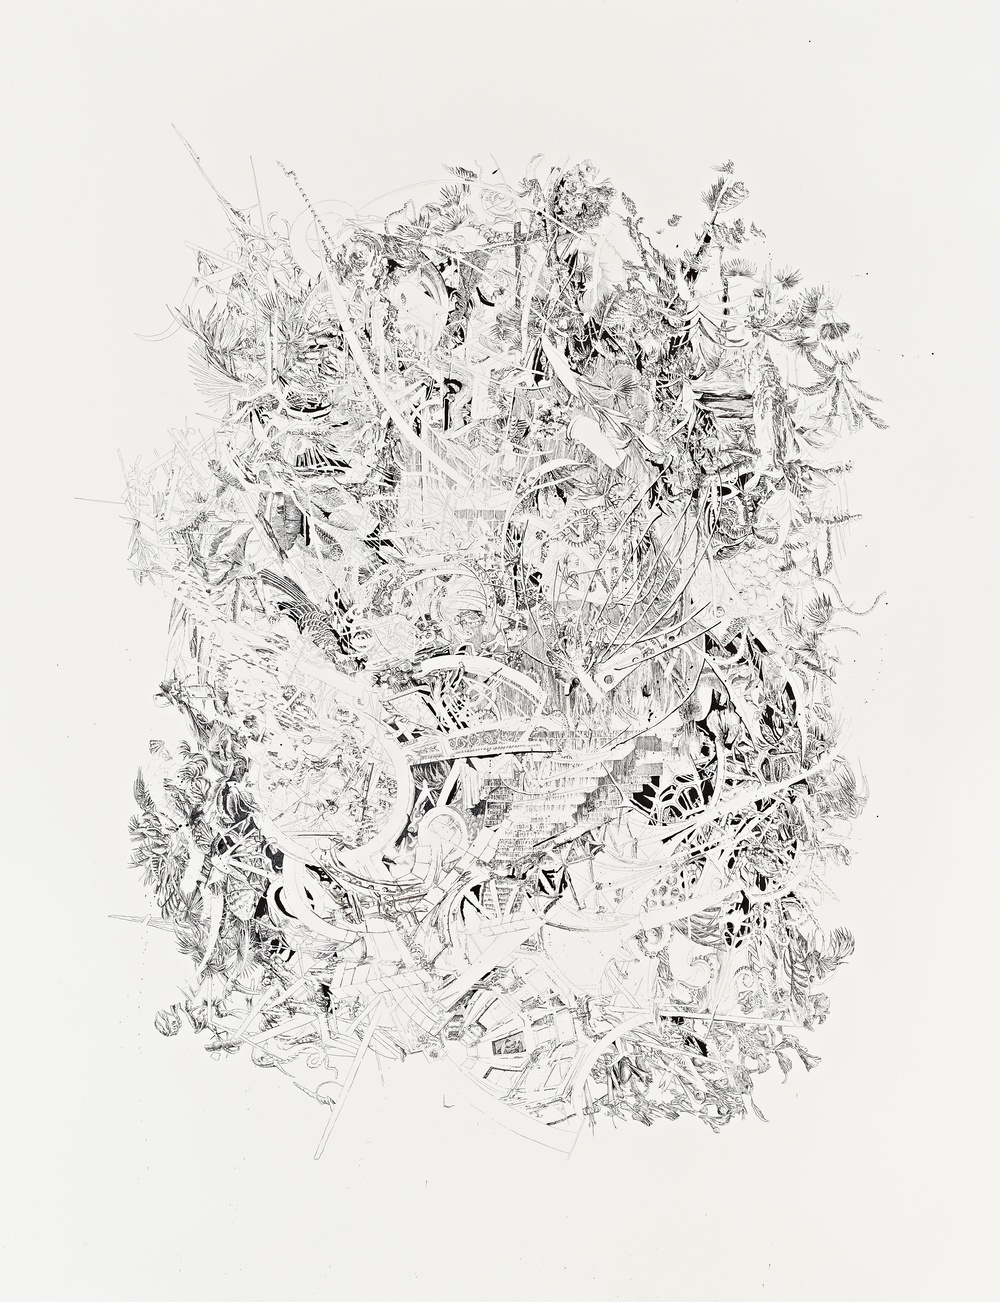 Bettina Krieg | P 89 Untitled | Ink on Paper | 245 x 191 cm | 2012